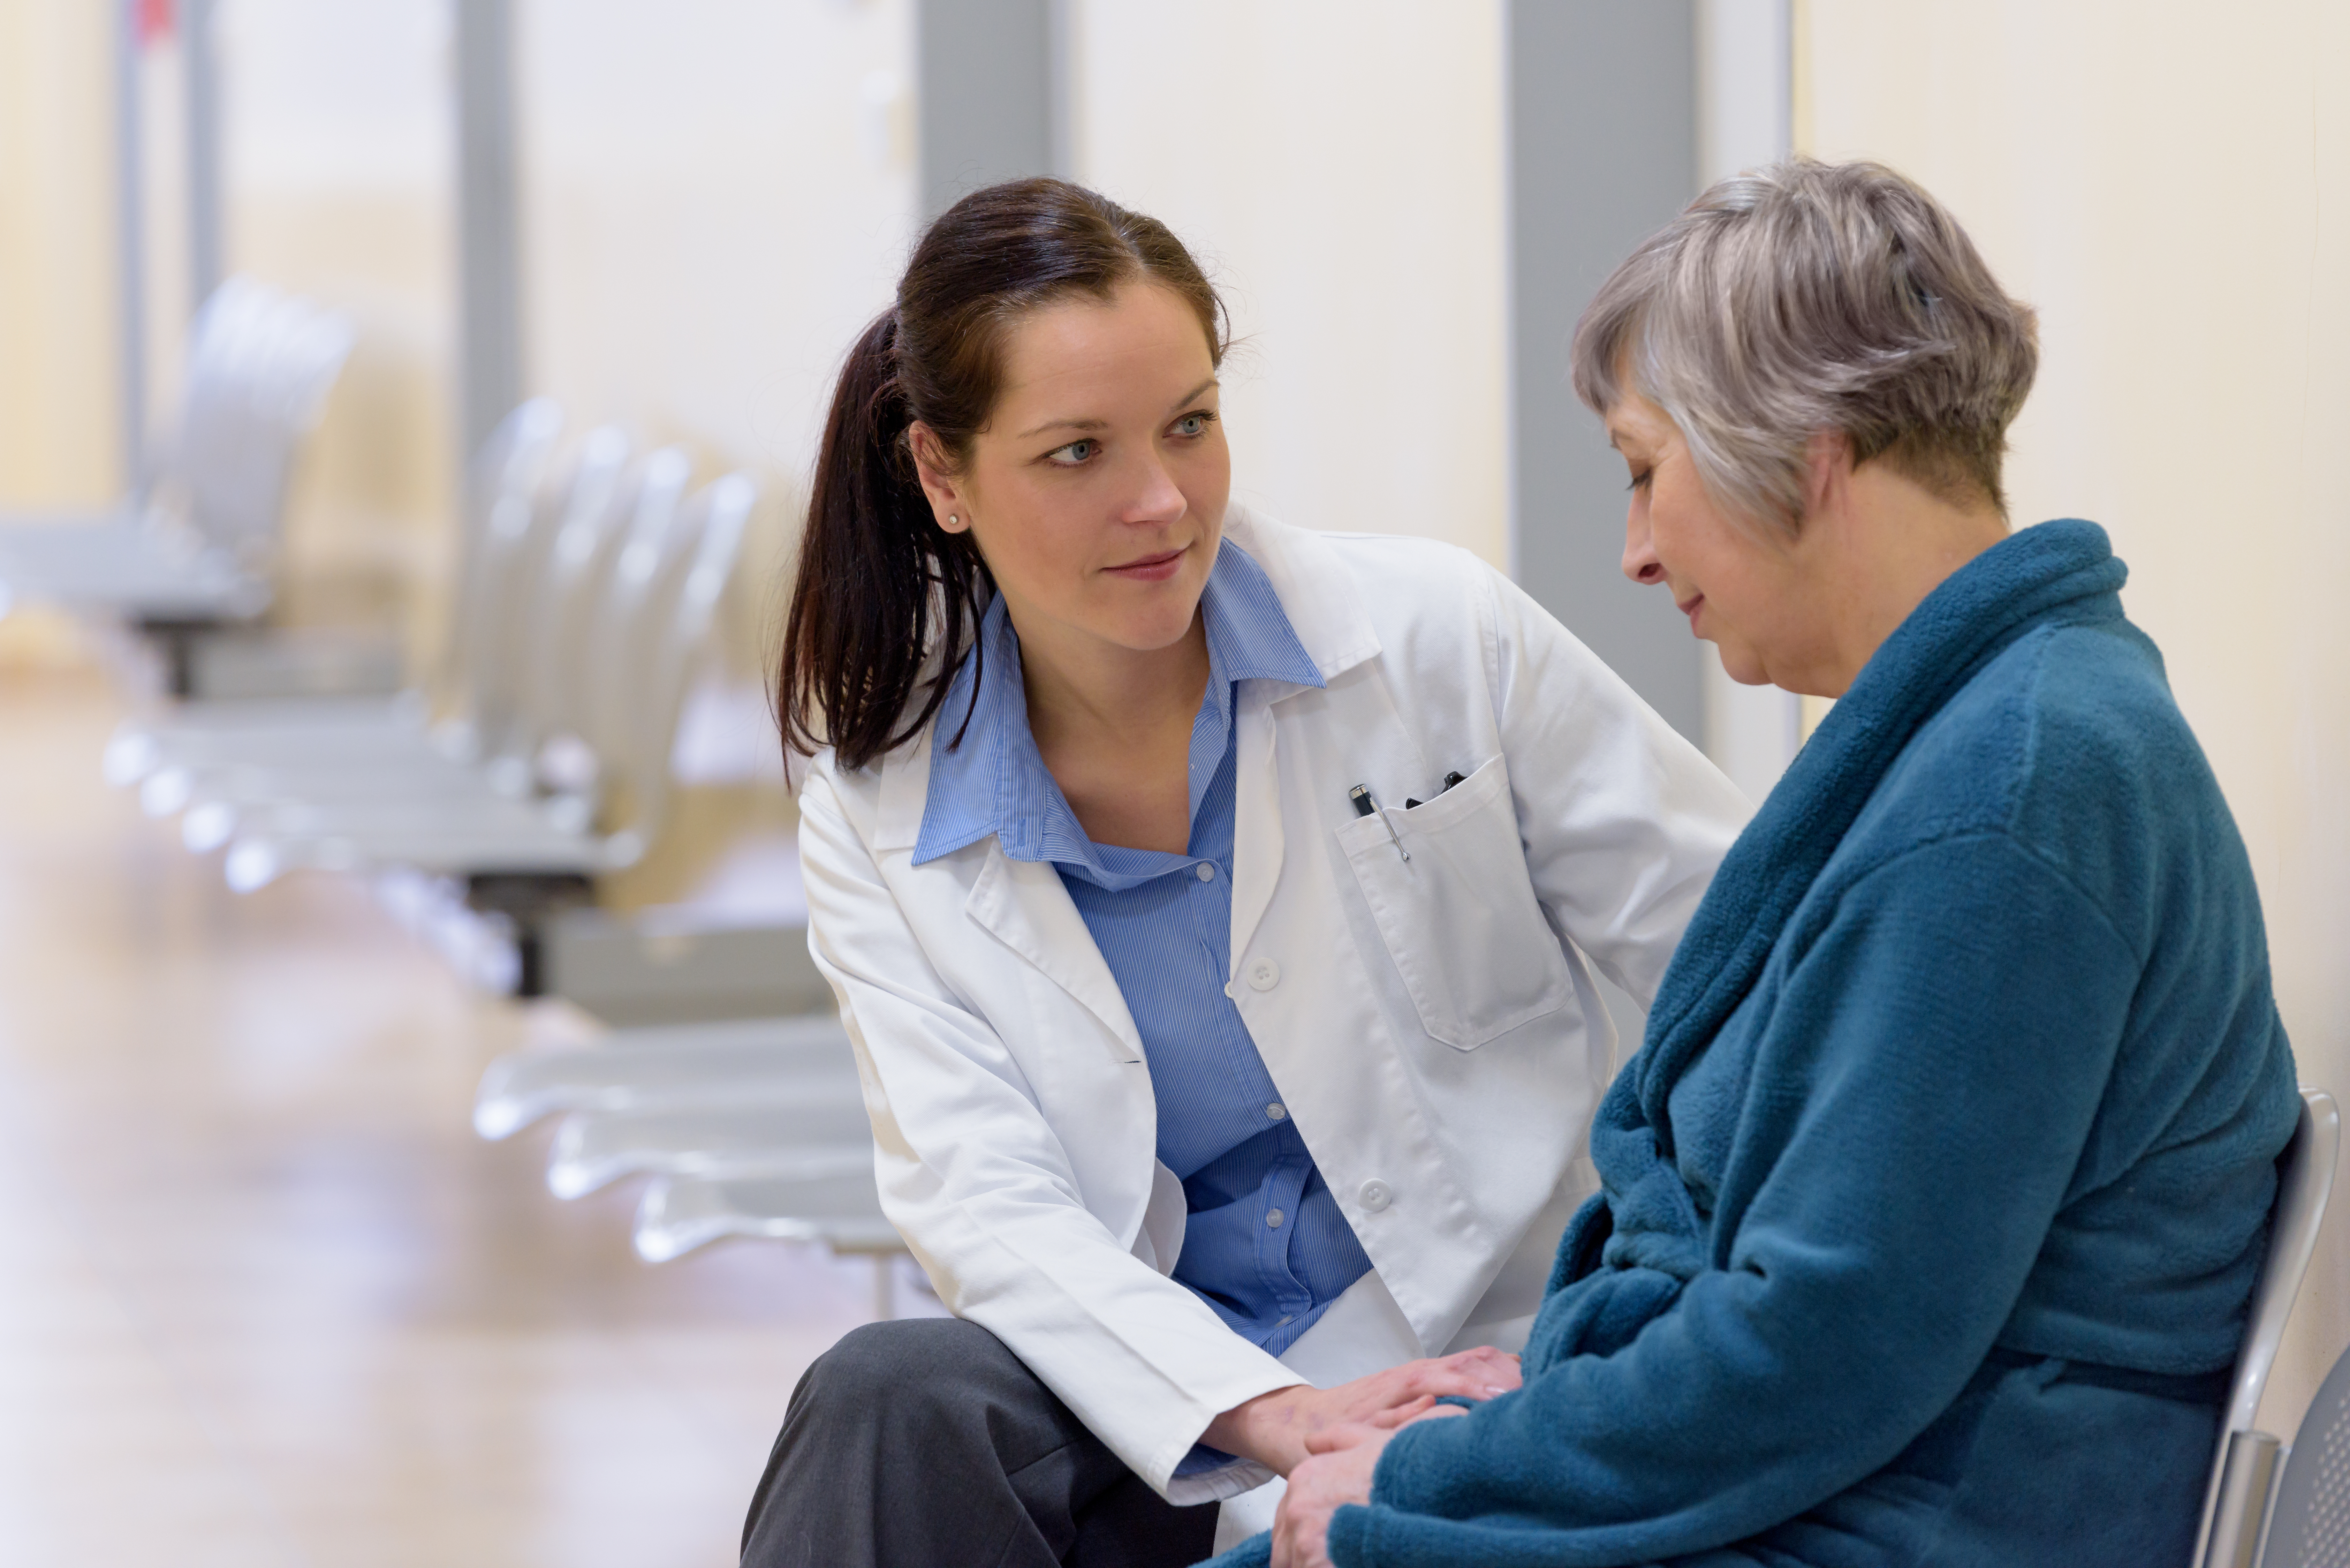 Female doctor comforting senior patient in hospital